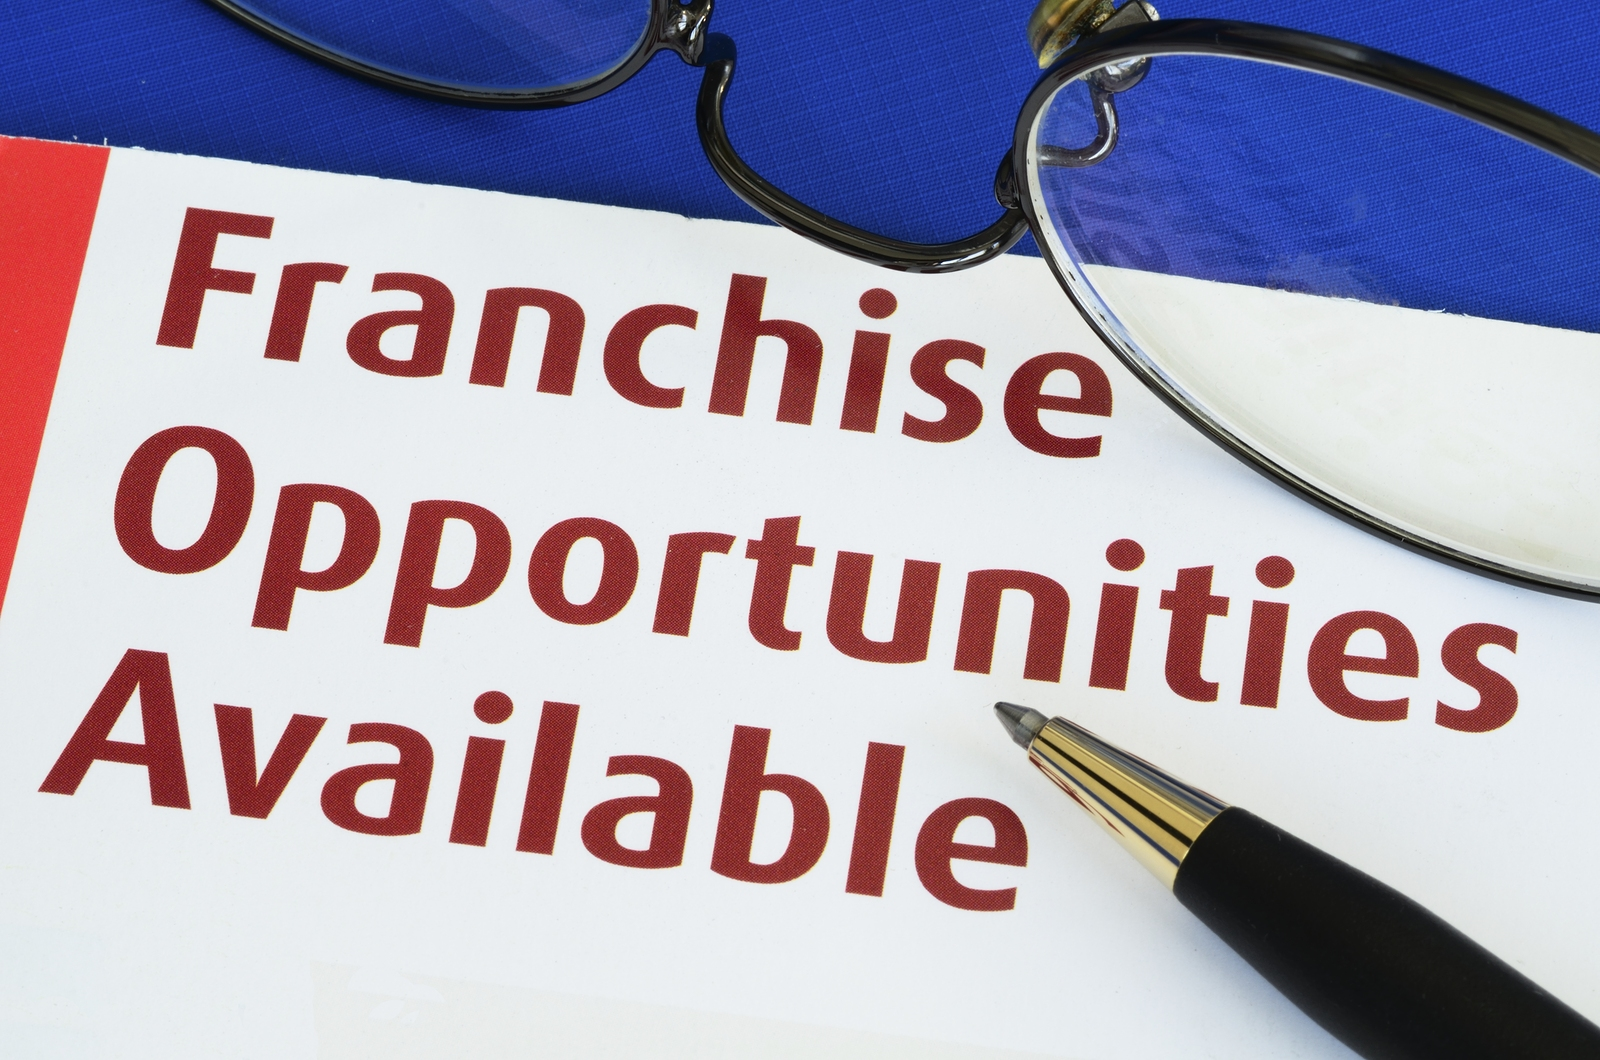 bigstock-Franchise-opportunities-concep-40612081